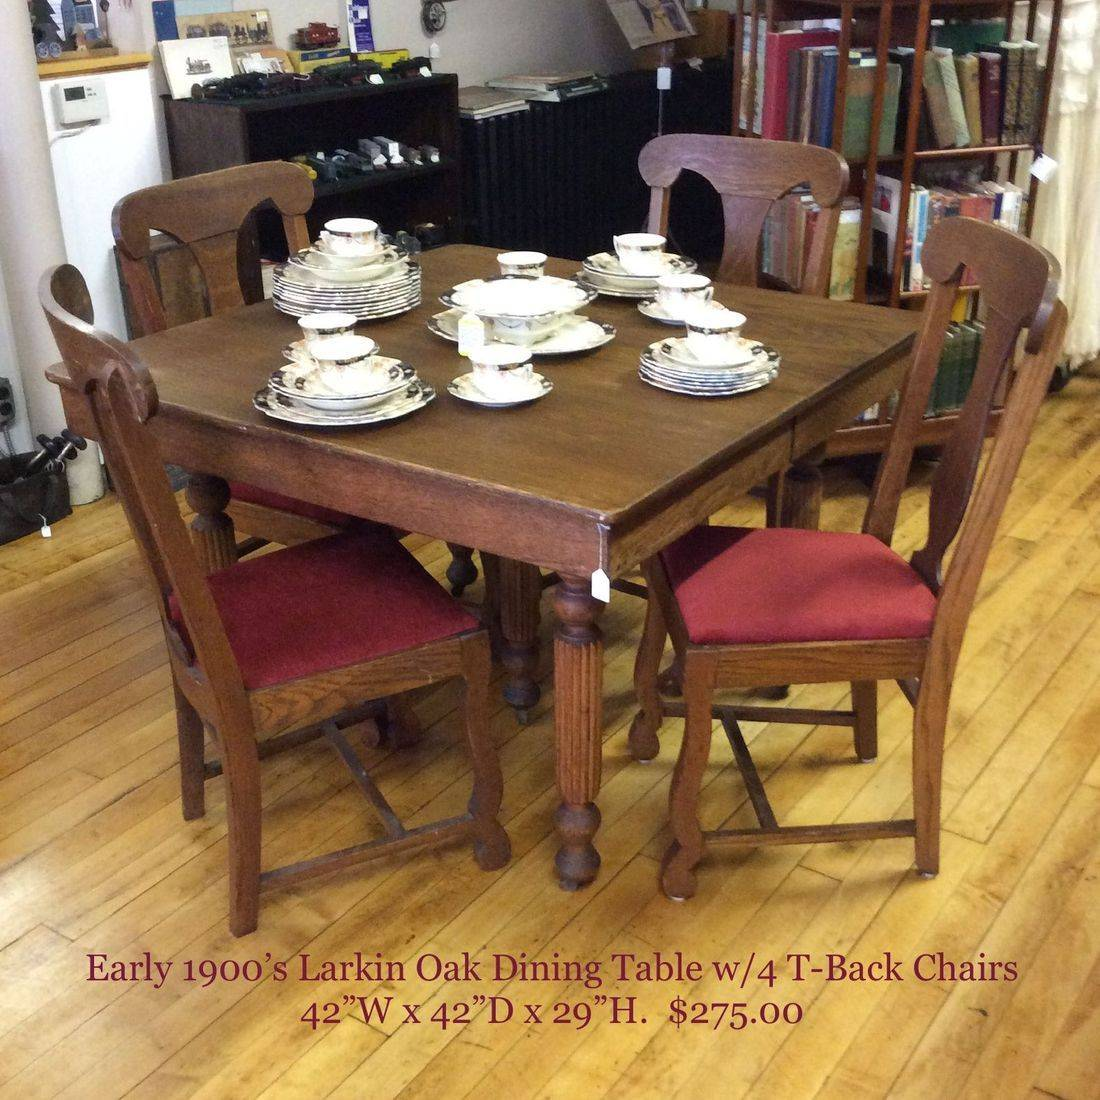 """Early 1900's  Larkin Oak Dining Table w/4-T-Back Oak Chairs and 1-21"""" Leaf  42"""" x 42"""" x 29""""H Table Top   $275.00"""